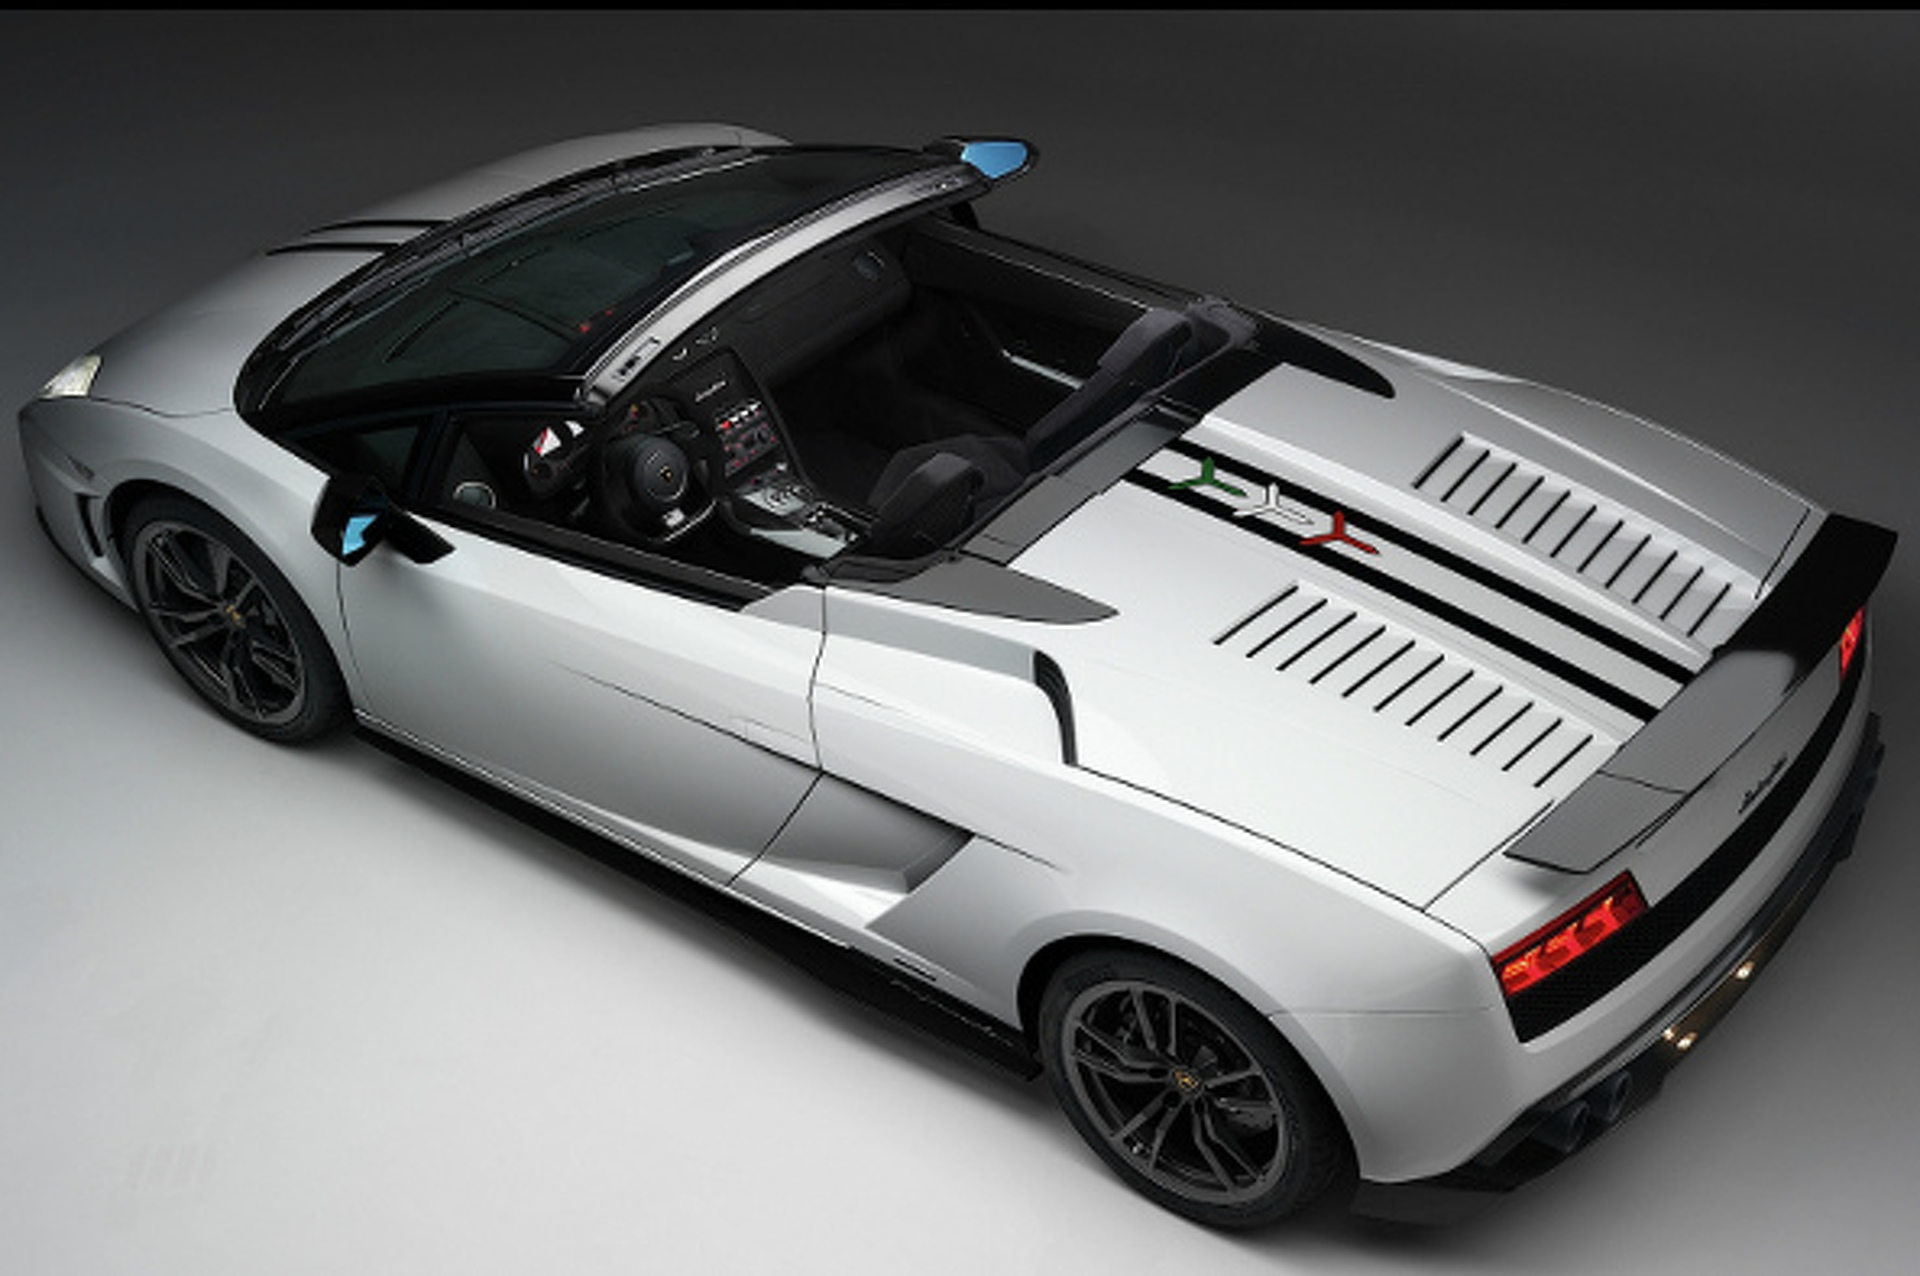 Lamborghini Gallardo Special Editions Through the Years